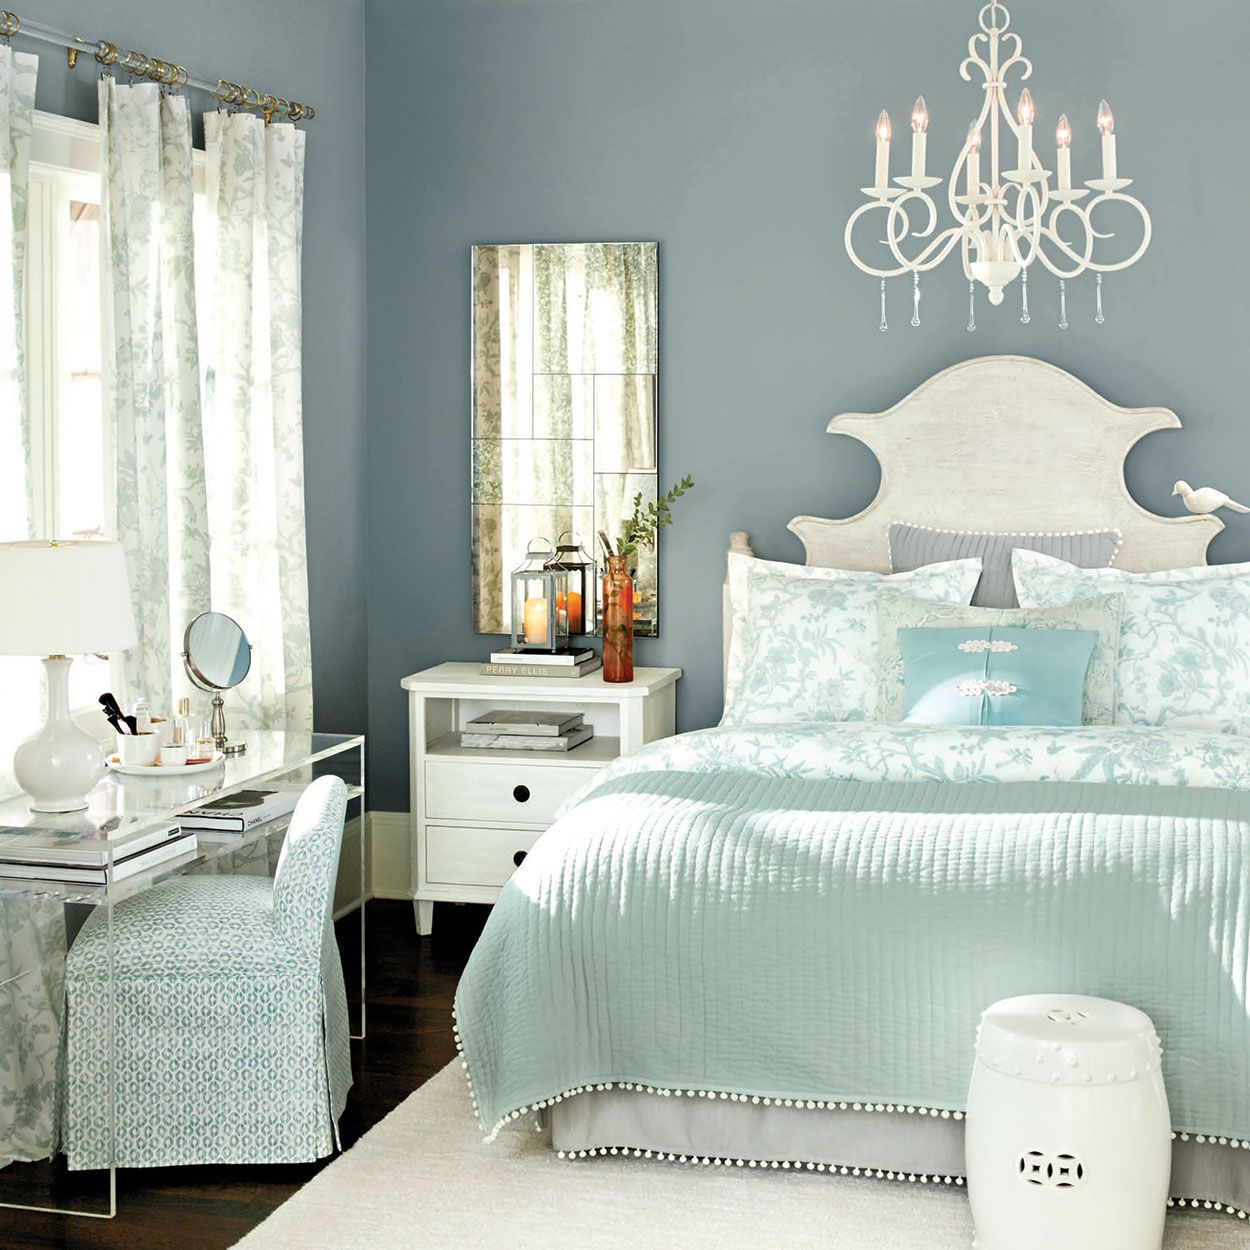 Bedroom Decorating Ideas Totally Toile: Bedroom Decorating Ideas (With Images)